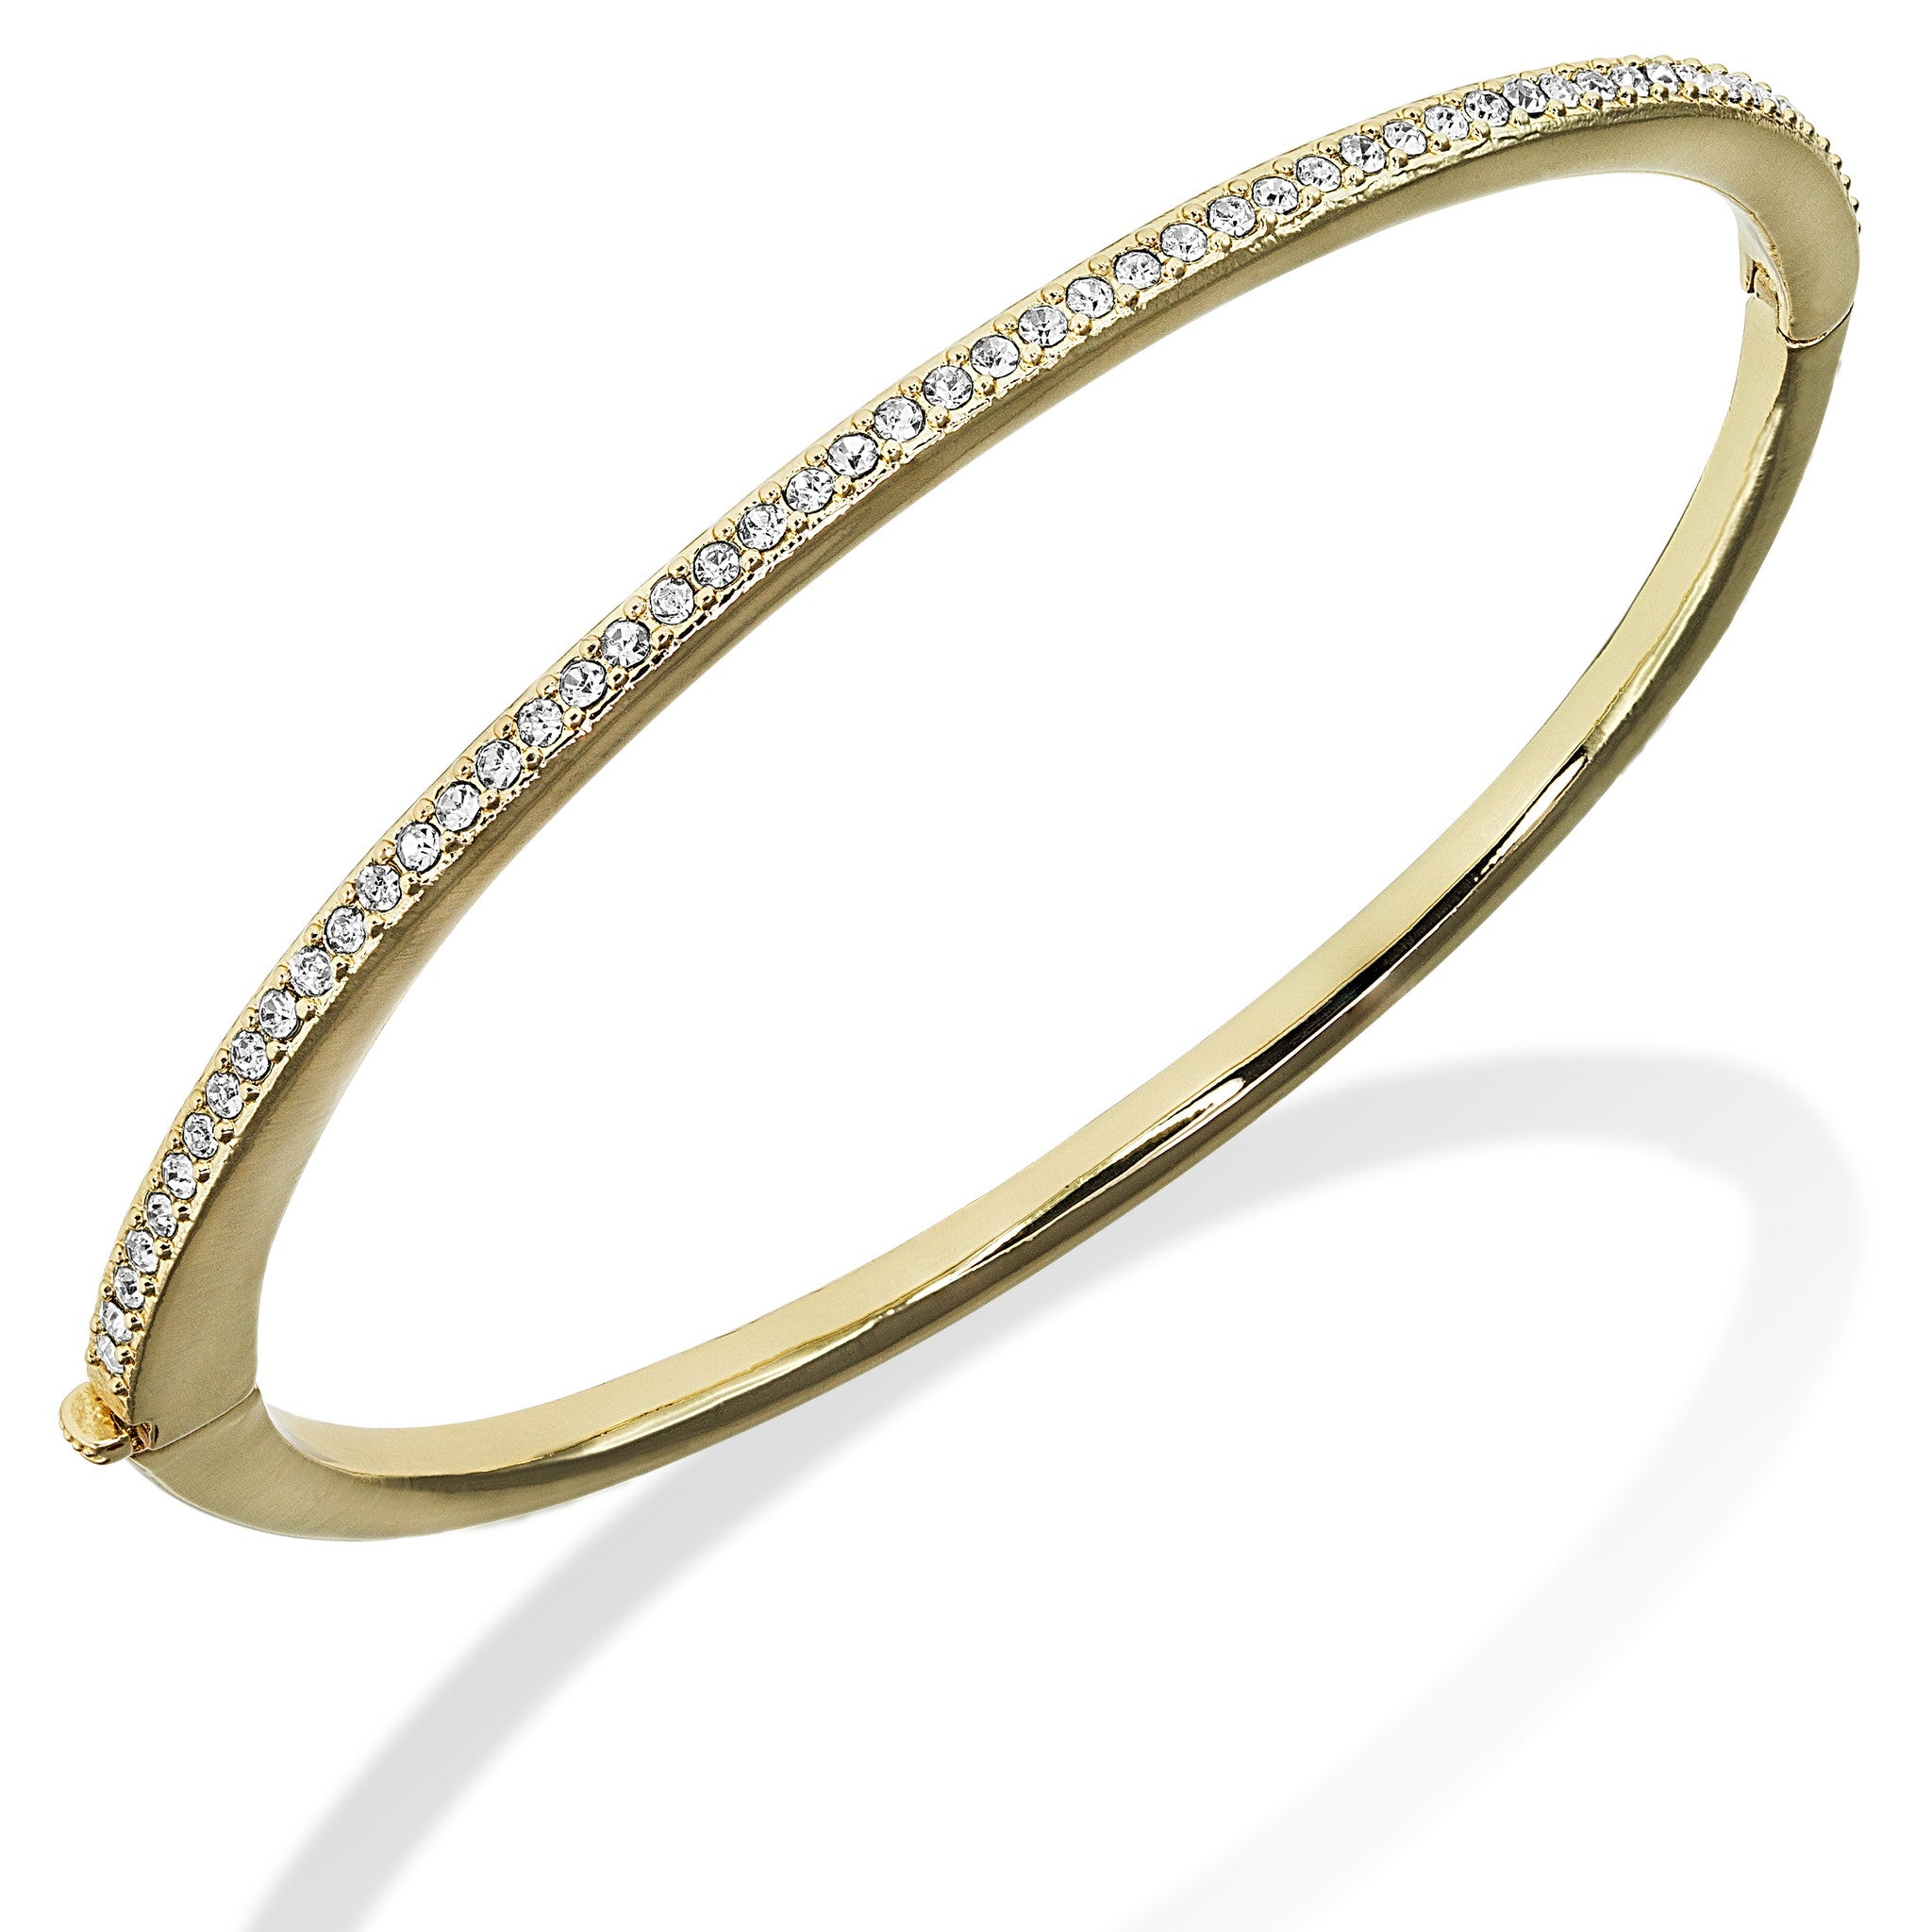 diamond joaillerie messika pave floating bangles gold bangle move bracelet white noa